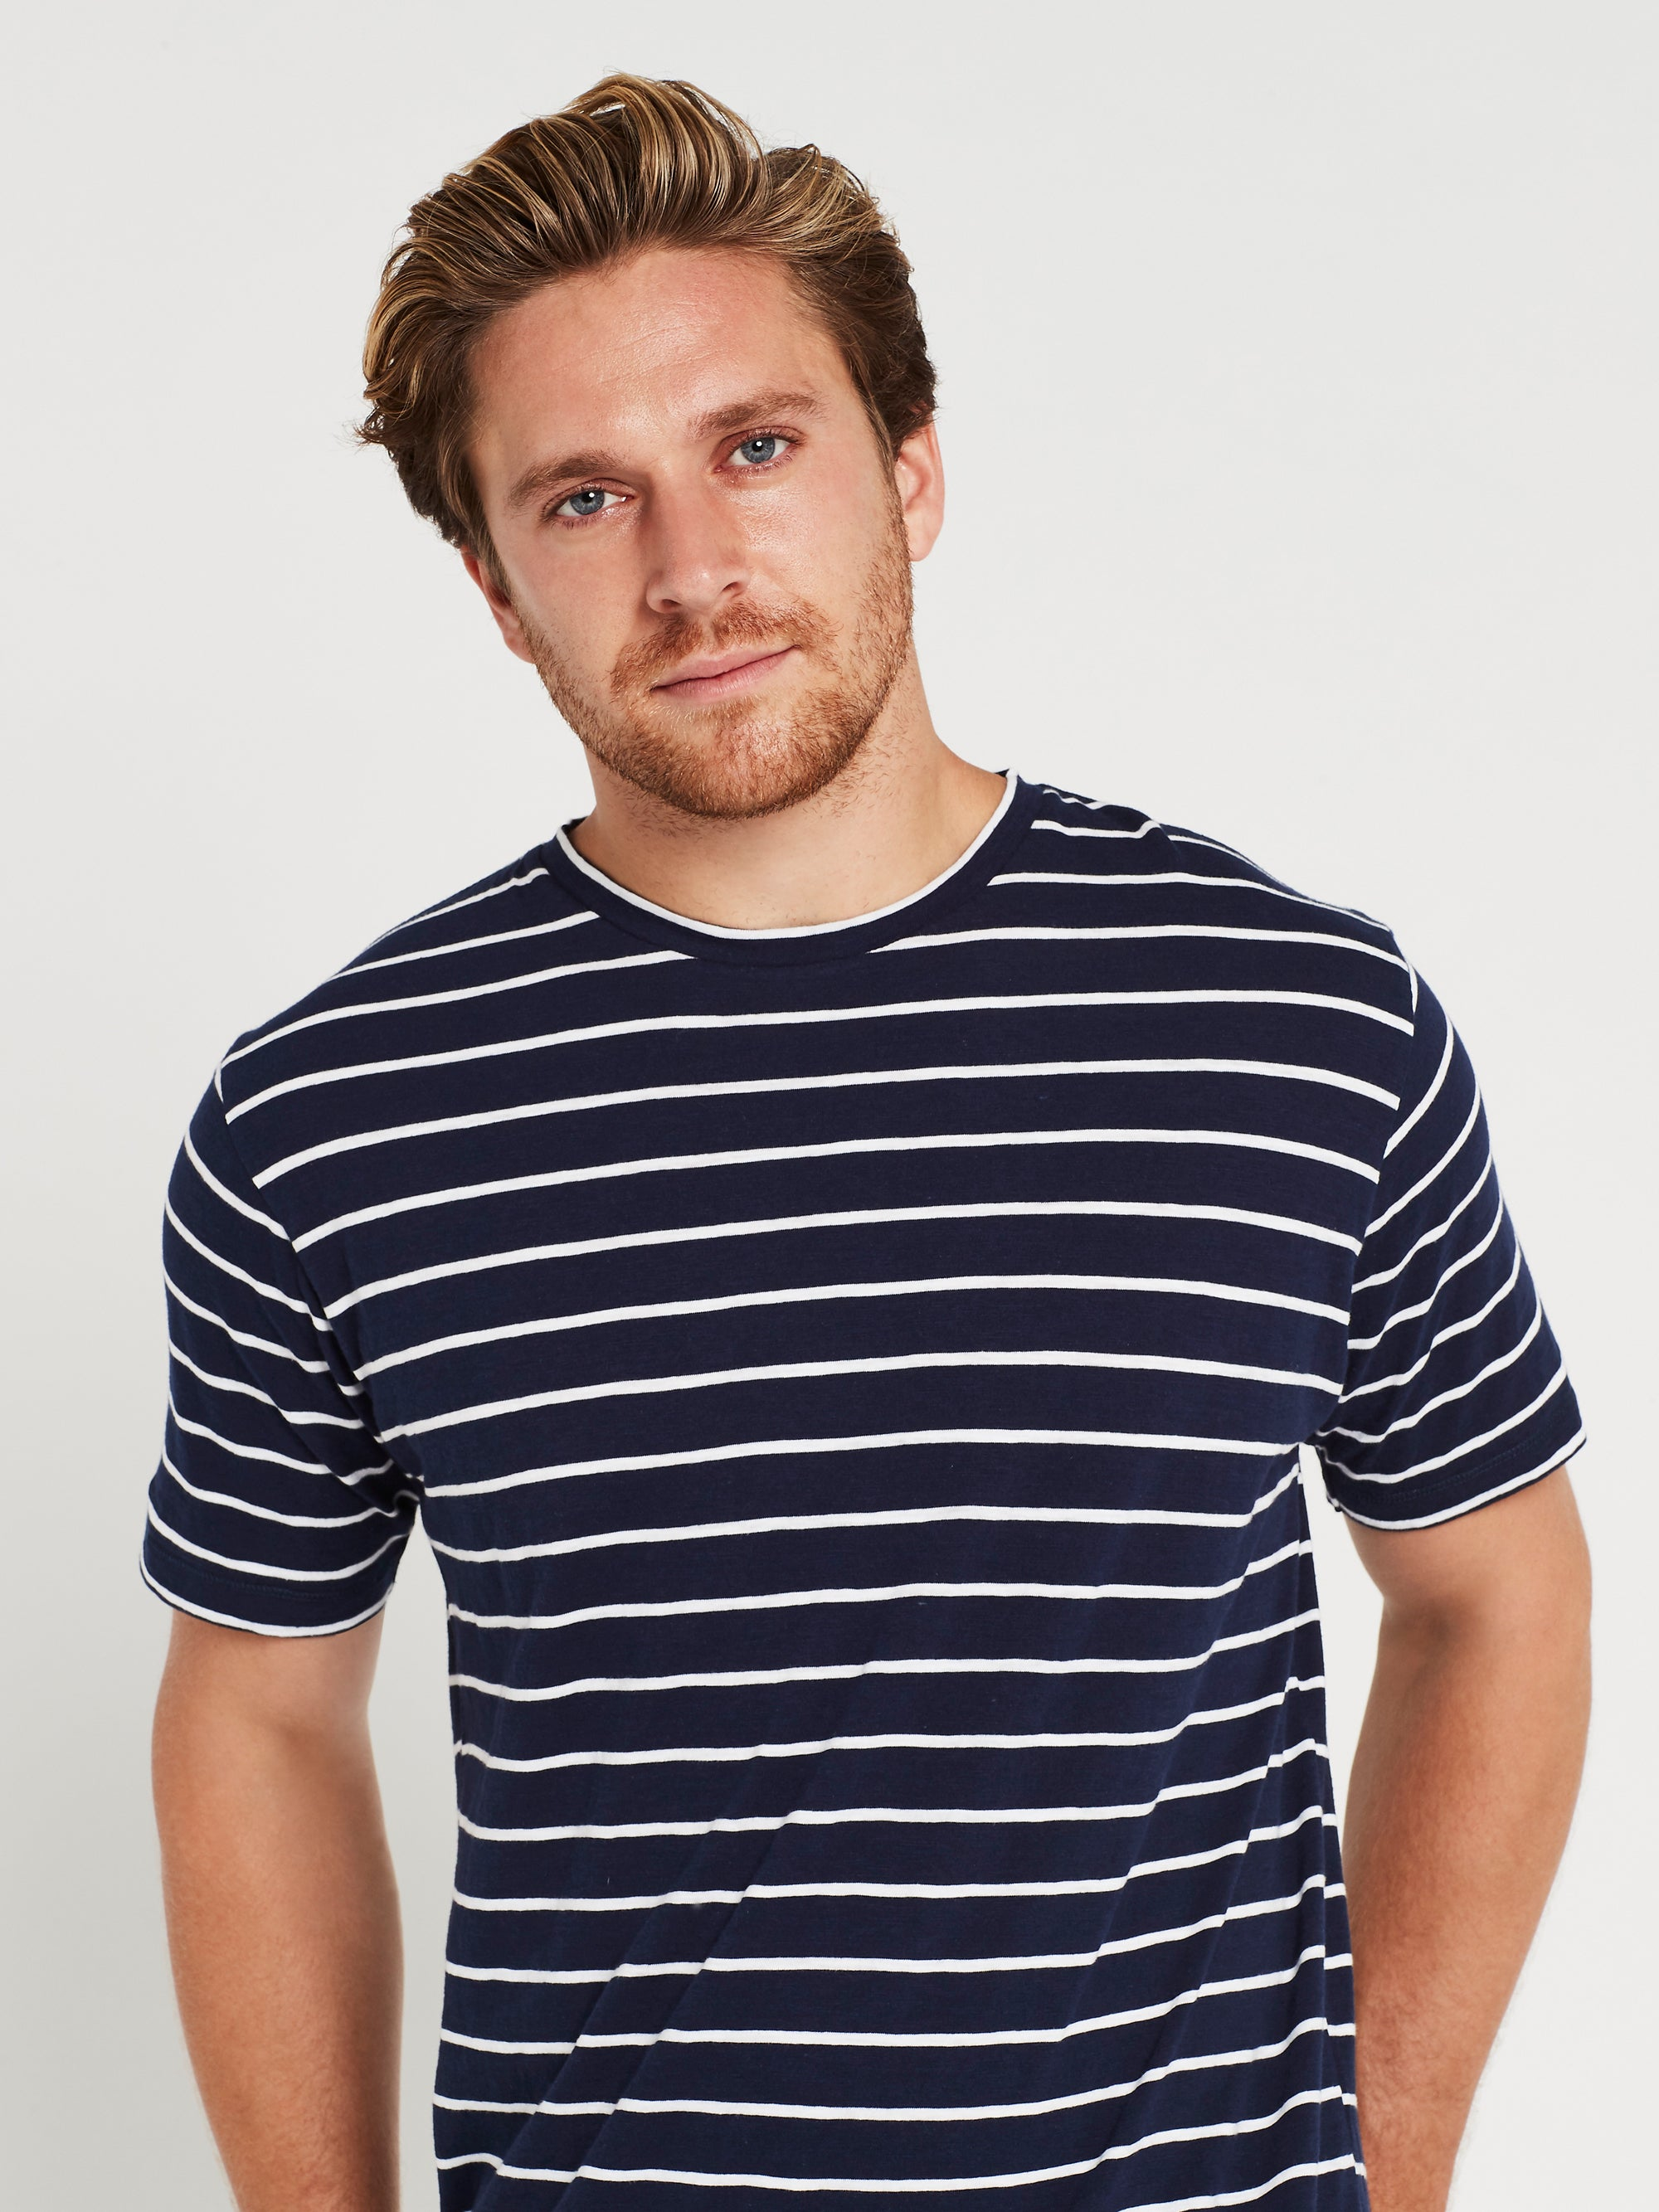 Liam Short Sleeve T-Shirt Navy & White Stripe